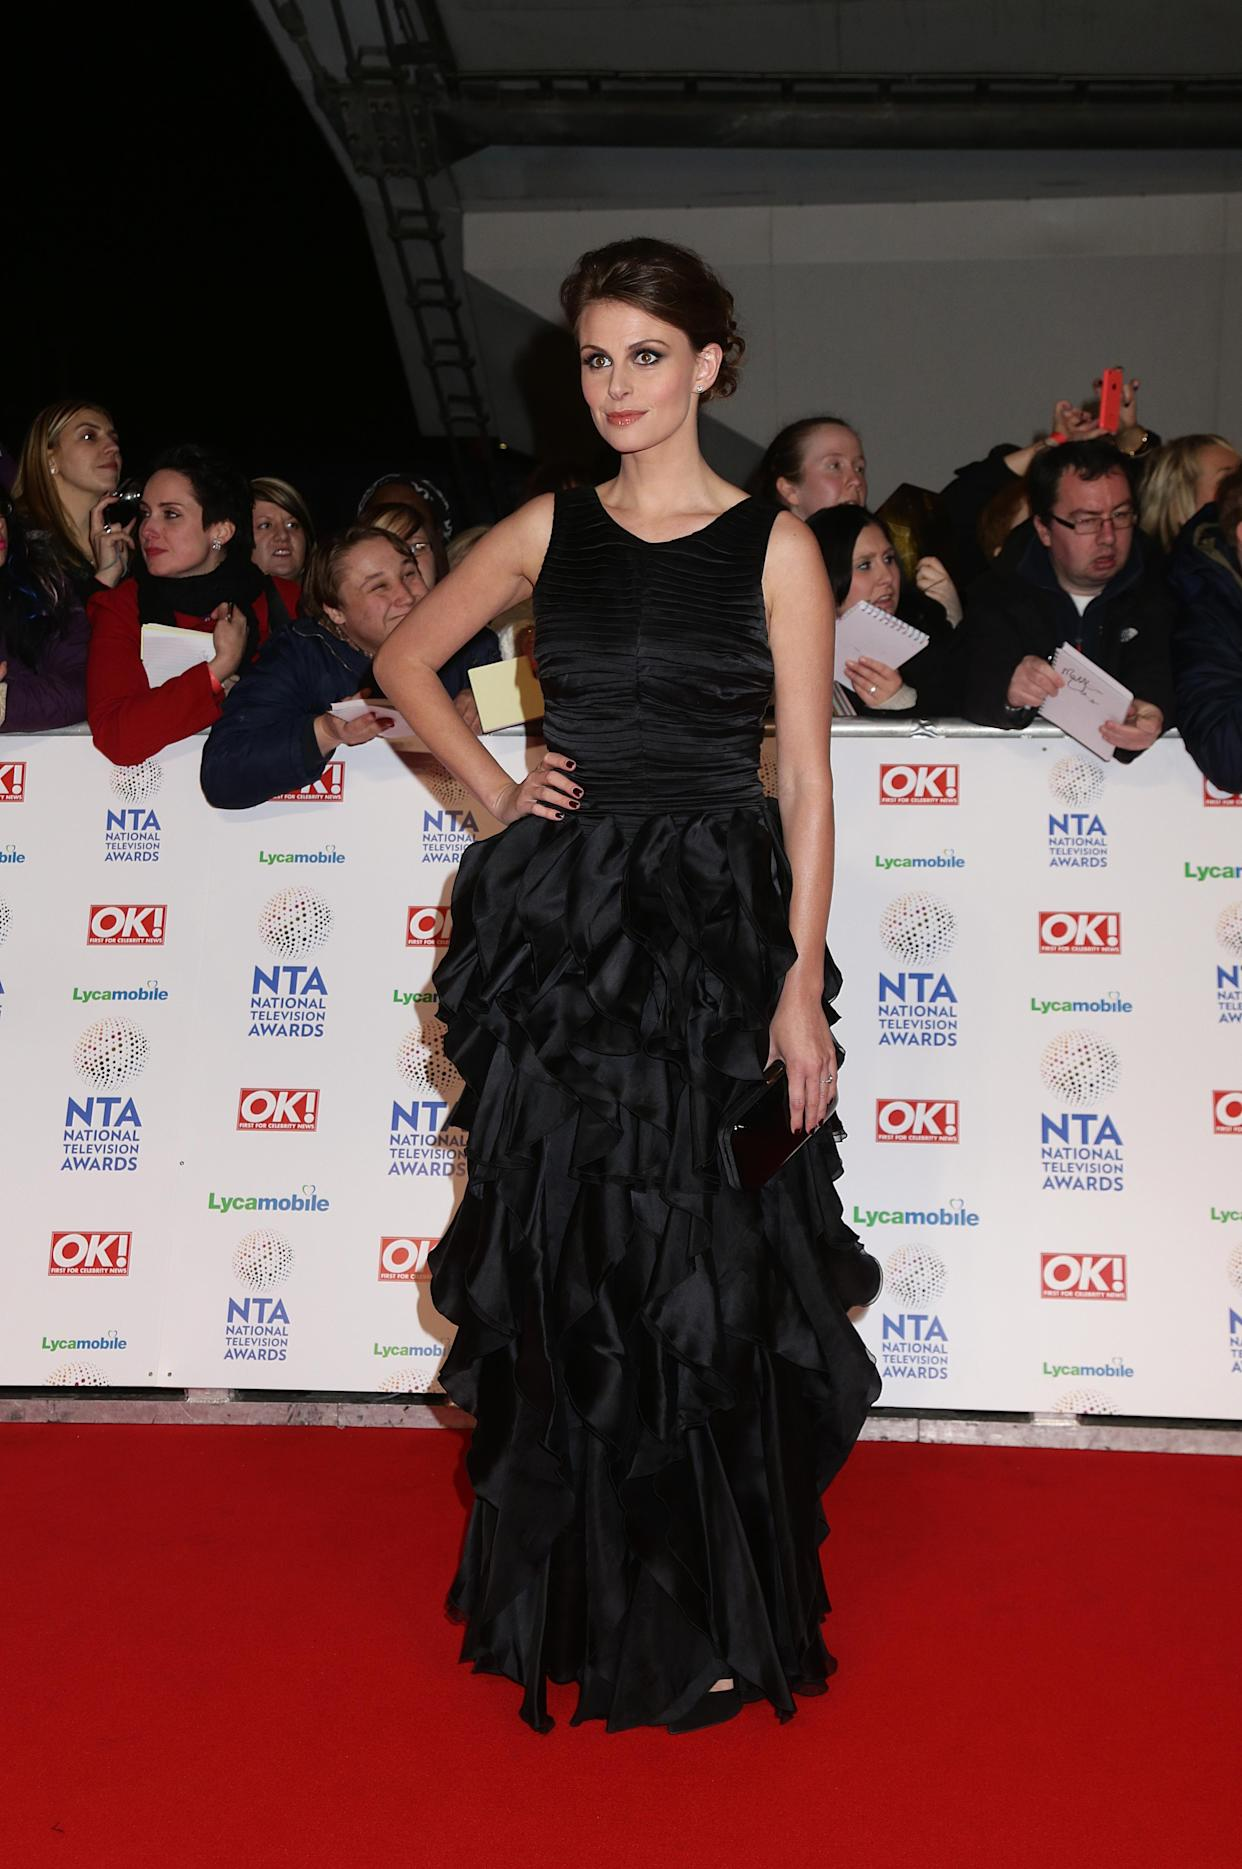 Ellie Taylor arriving for the 2014 National Television Awards at the O2 Arena, London.   (Photo by Yui Mok/PA Images via Getty Images)